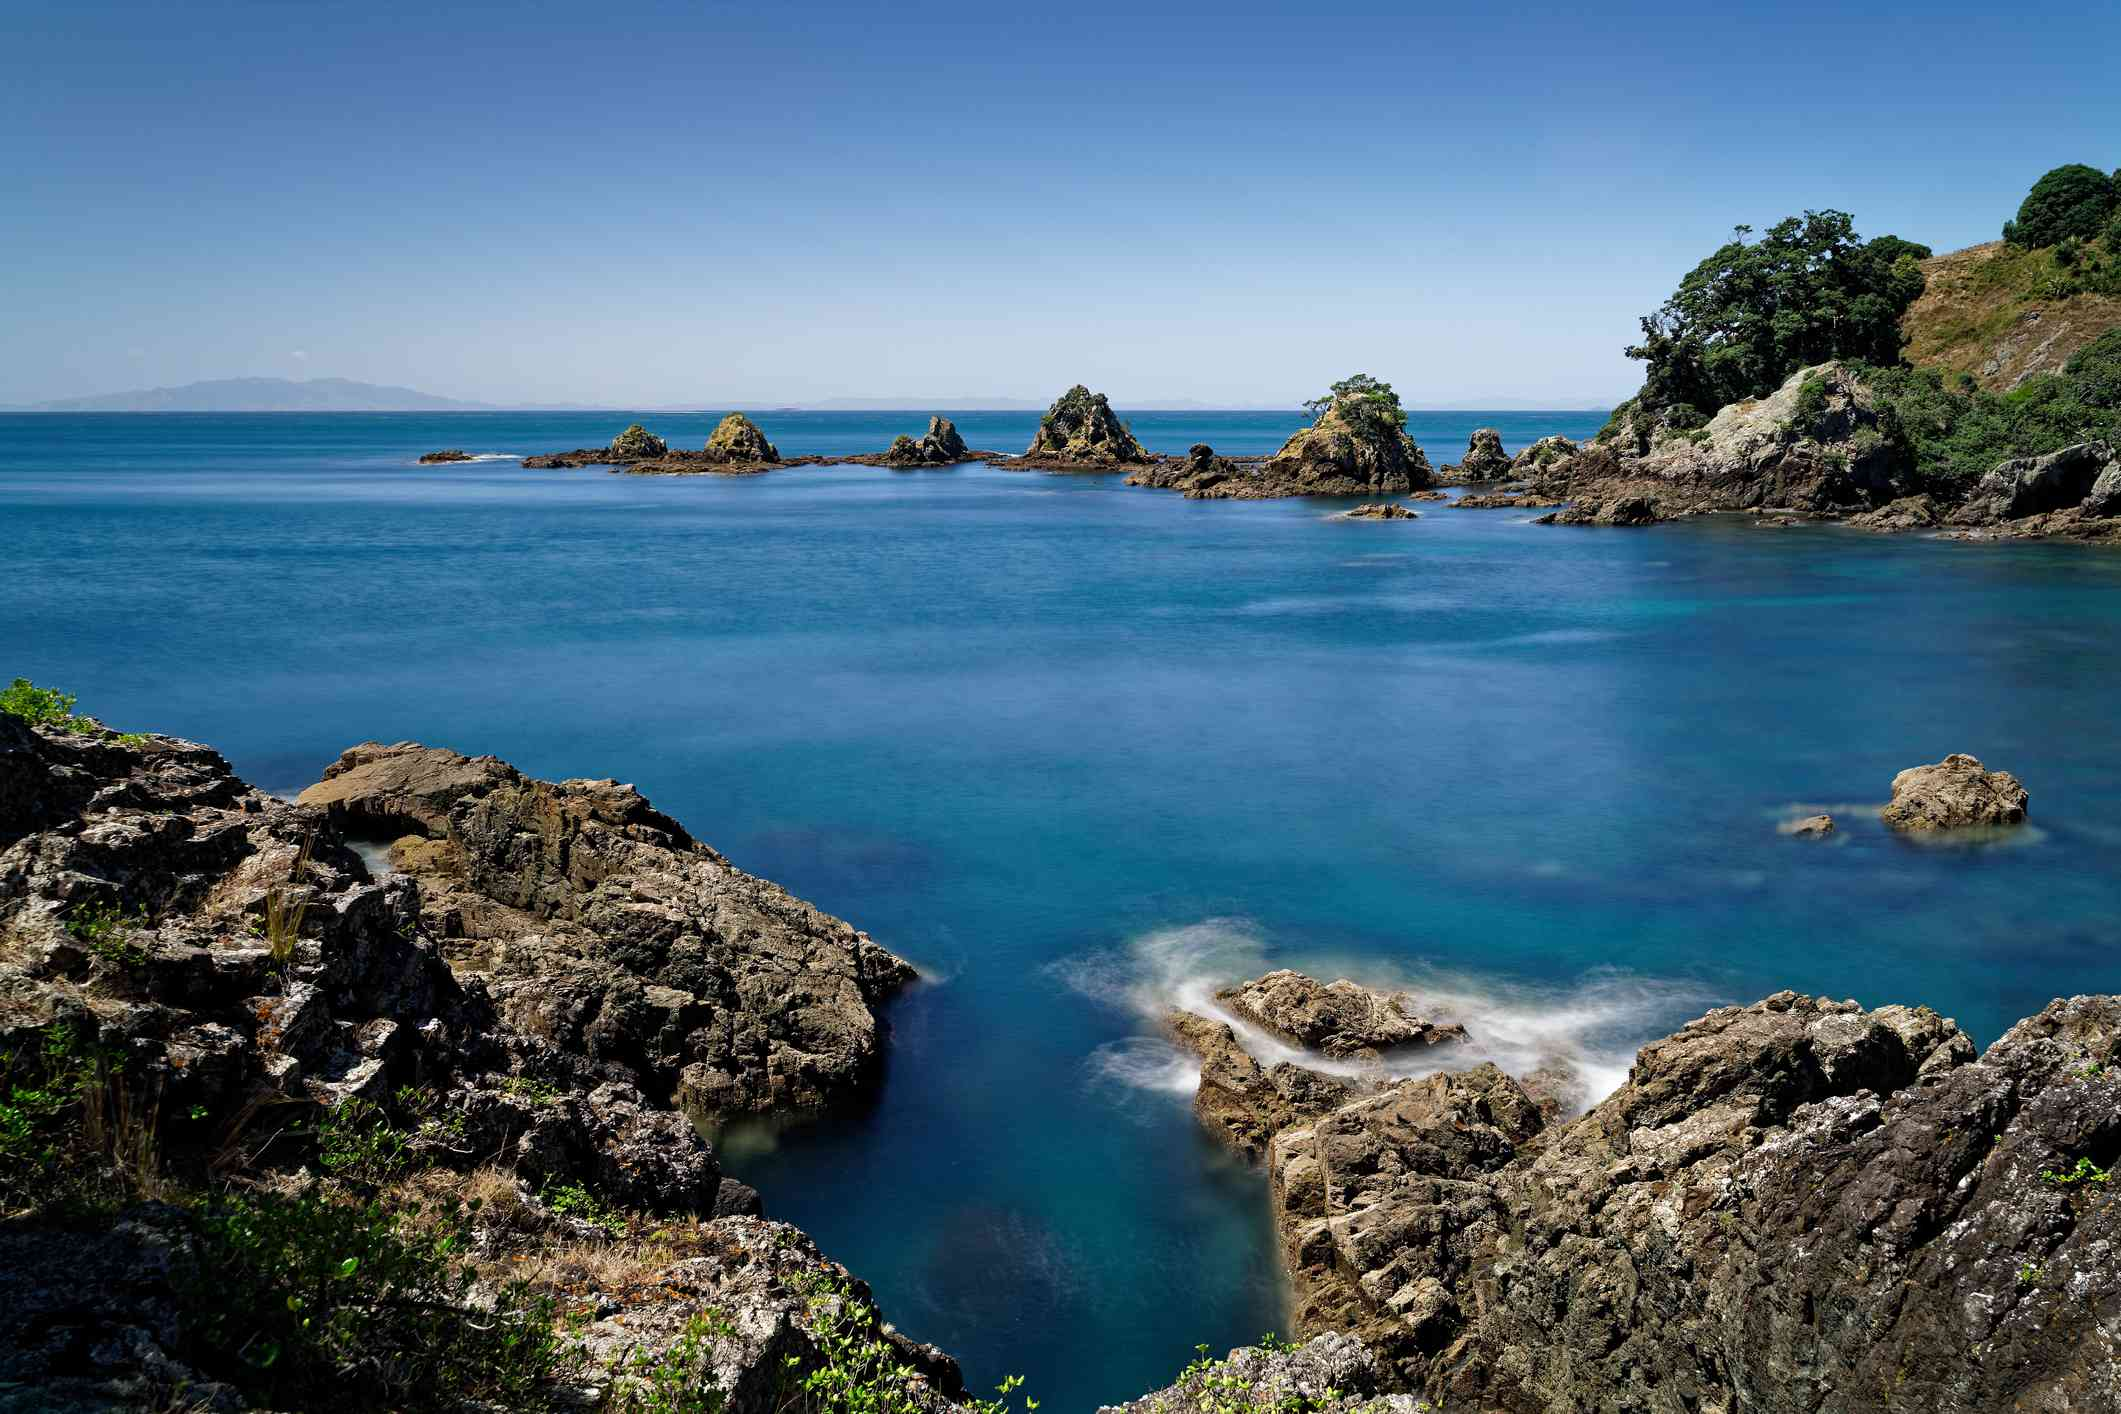 blue sea with rockpools in a bay